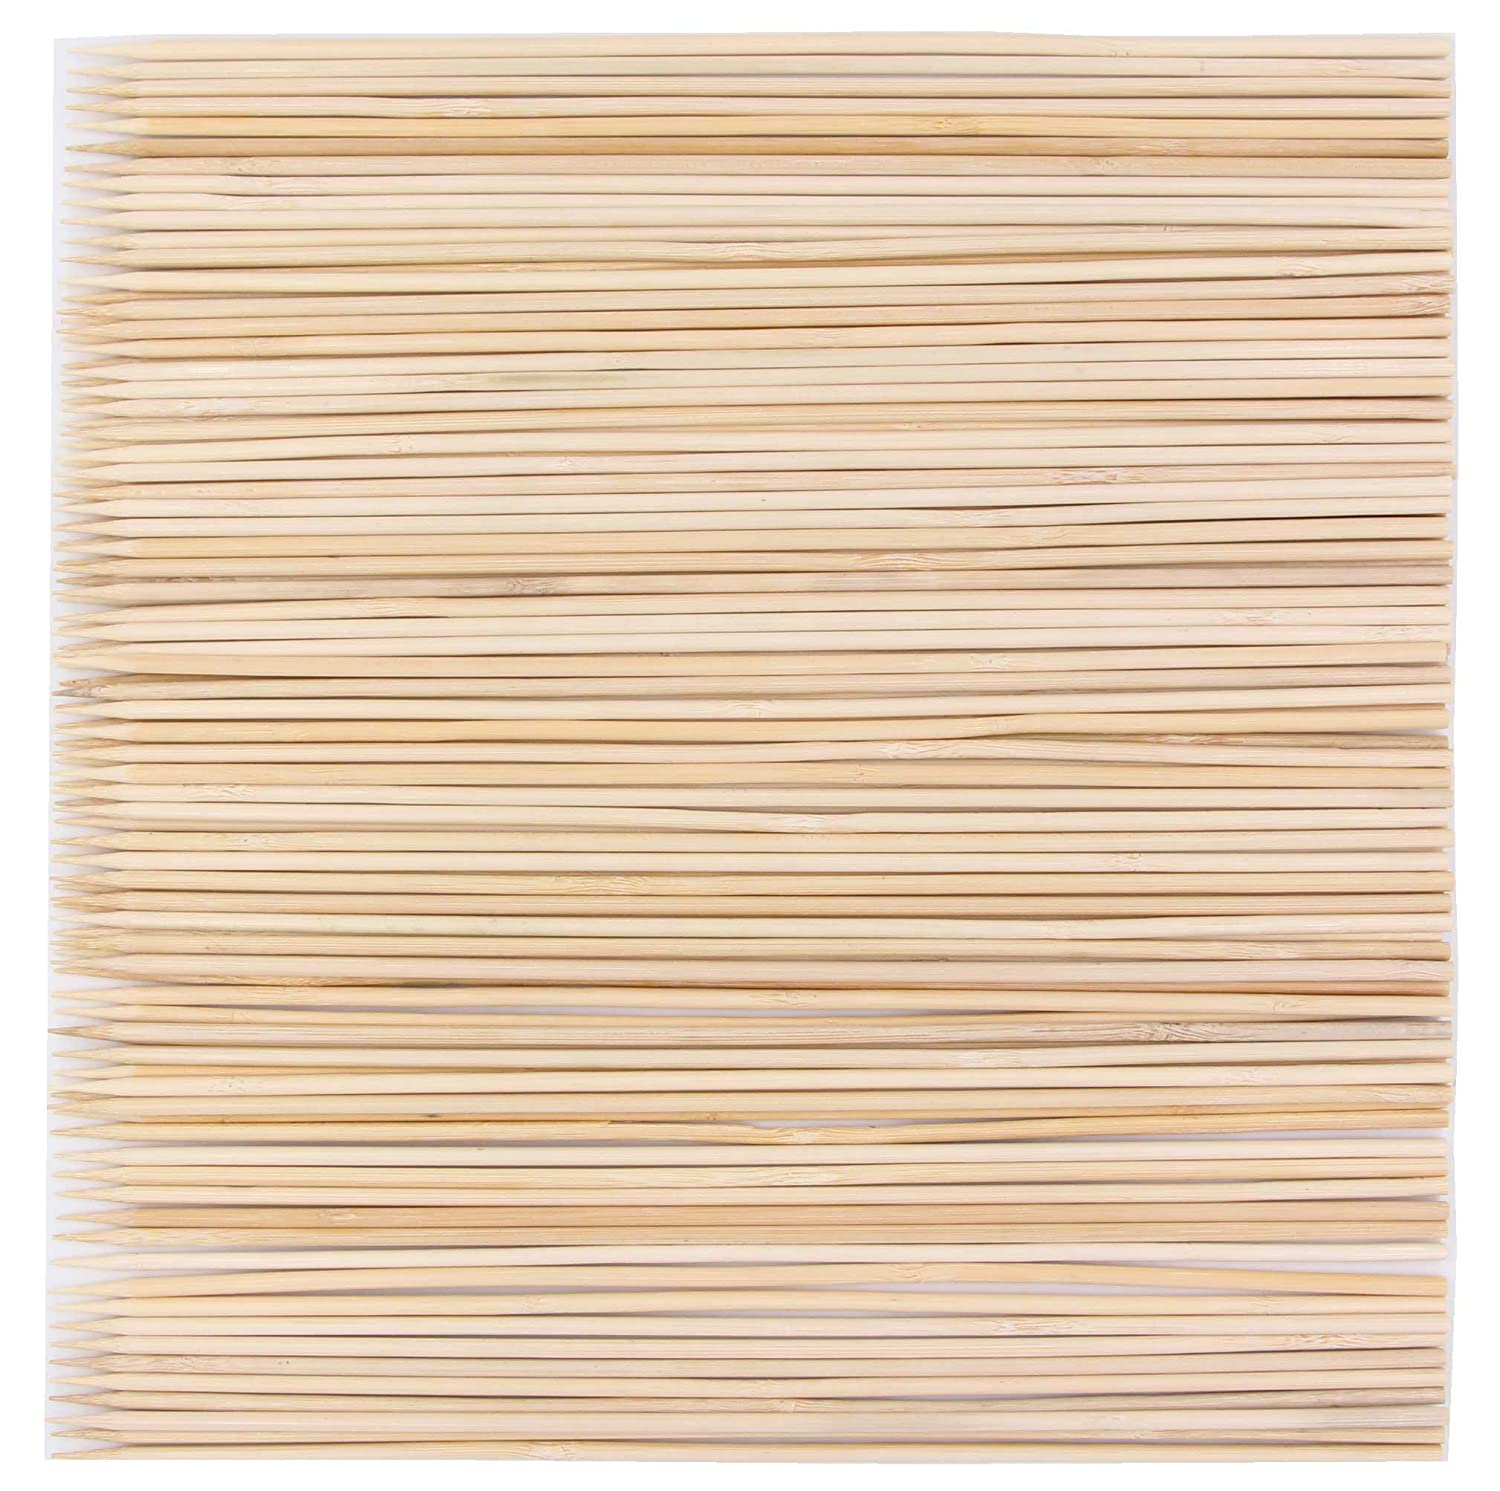 LeBeila Bamboo Skewers 12 Inch 100PCS BBQ Skewers Bamboo Grill Shish Kabob Skewers 100% Natural Bamboo Sticks for Barbecue, Marshmallow, Fondue, Cooking, Grilling & Kabob (100, 11.8'') 11.8'') LBL-PAJ6M-16791